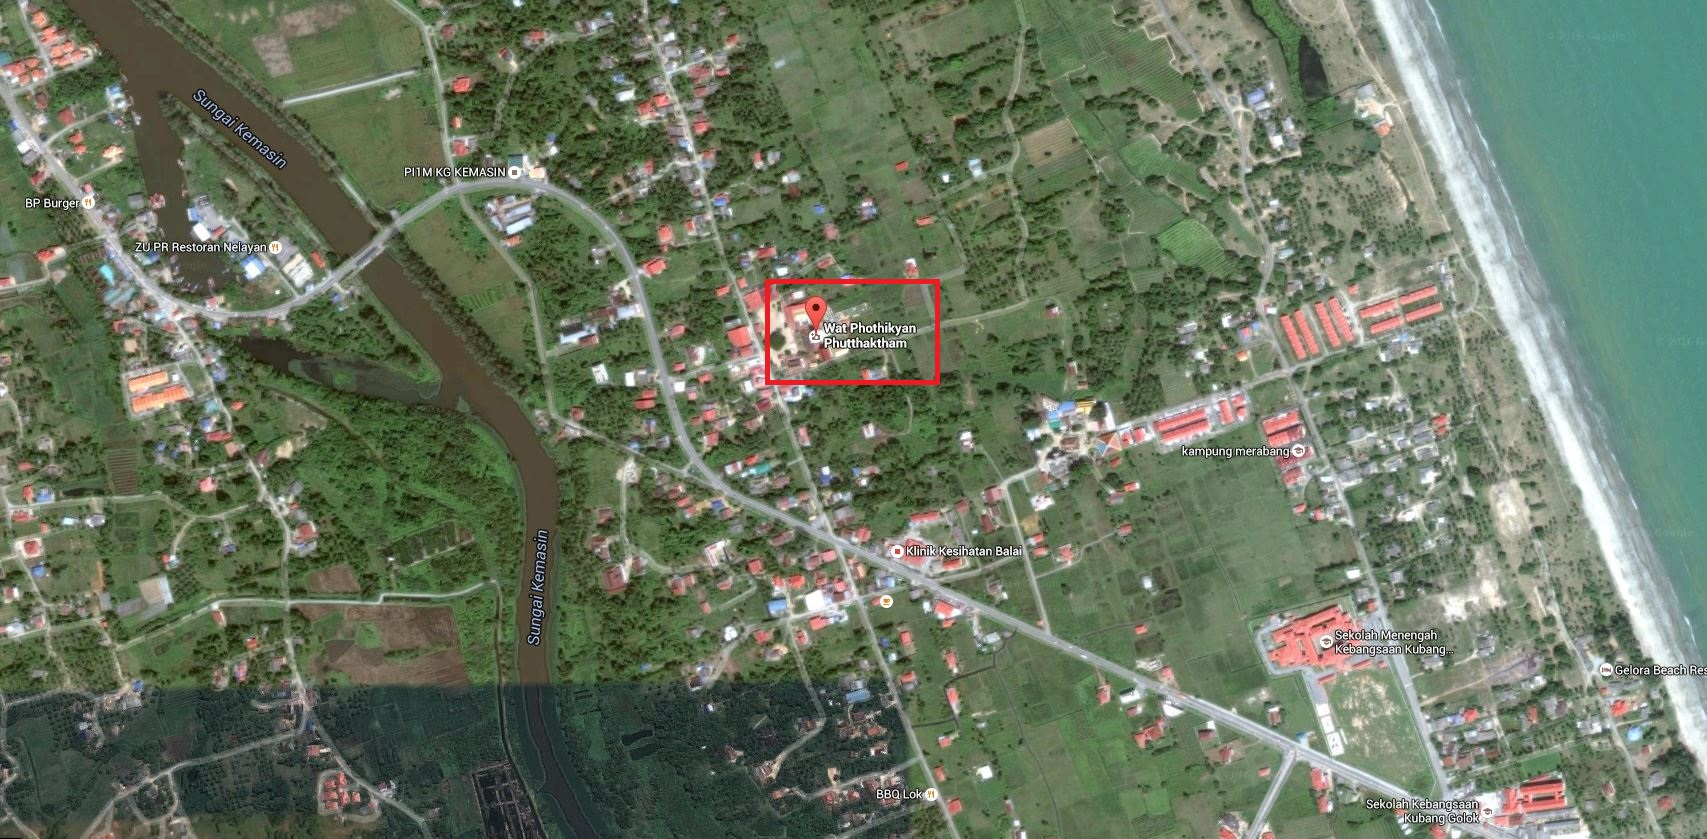 The location of Wat Phothikyan Phutthaktham. Click on image to enlarge.